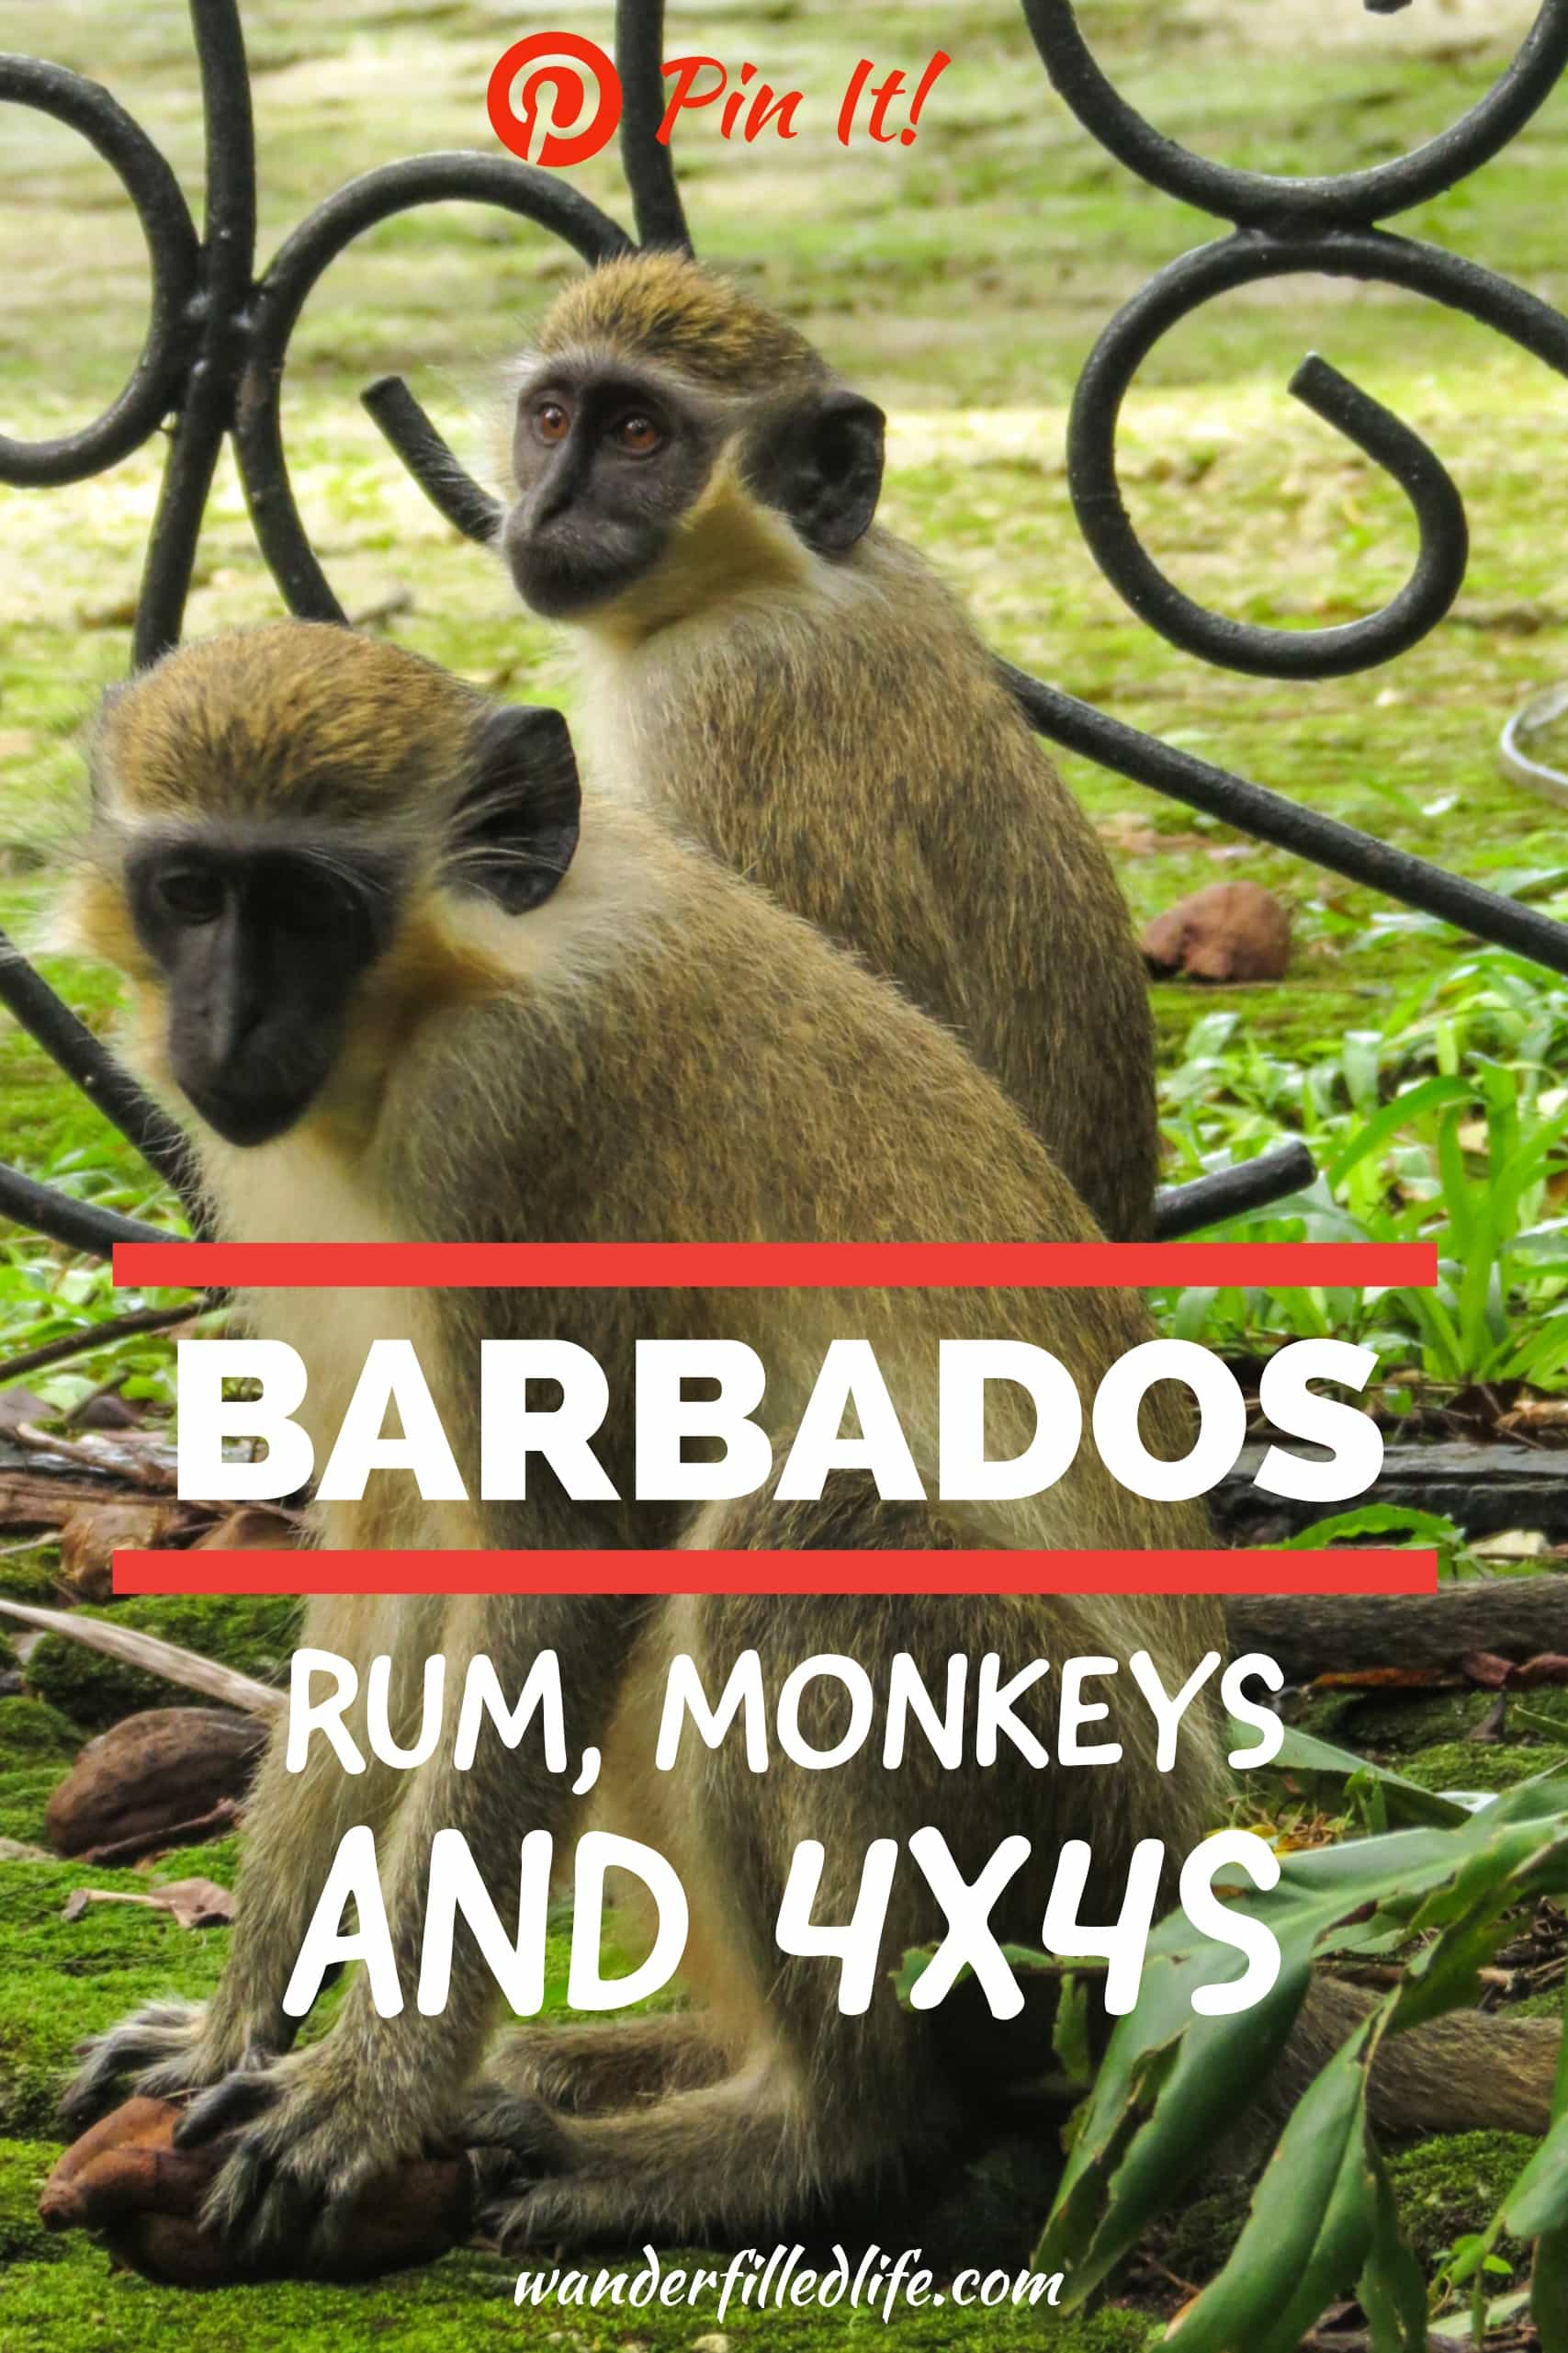 Port report from Bridgetown, Barbados, including the Mount Gay Rum Tasting Room, green monkeys at the wildlife preserve and the rugged Atlantic Coast.